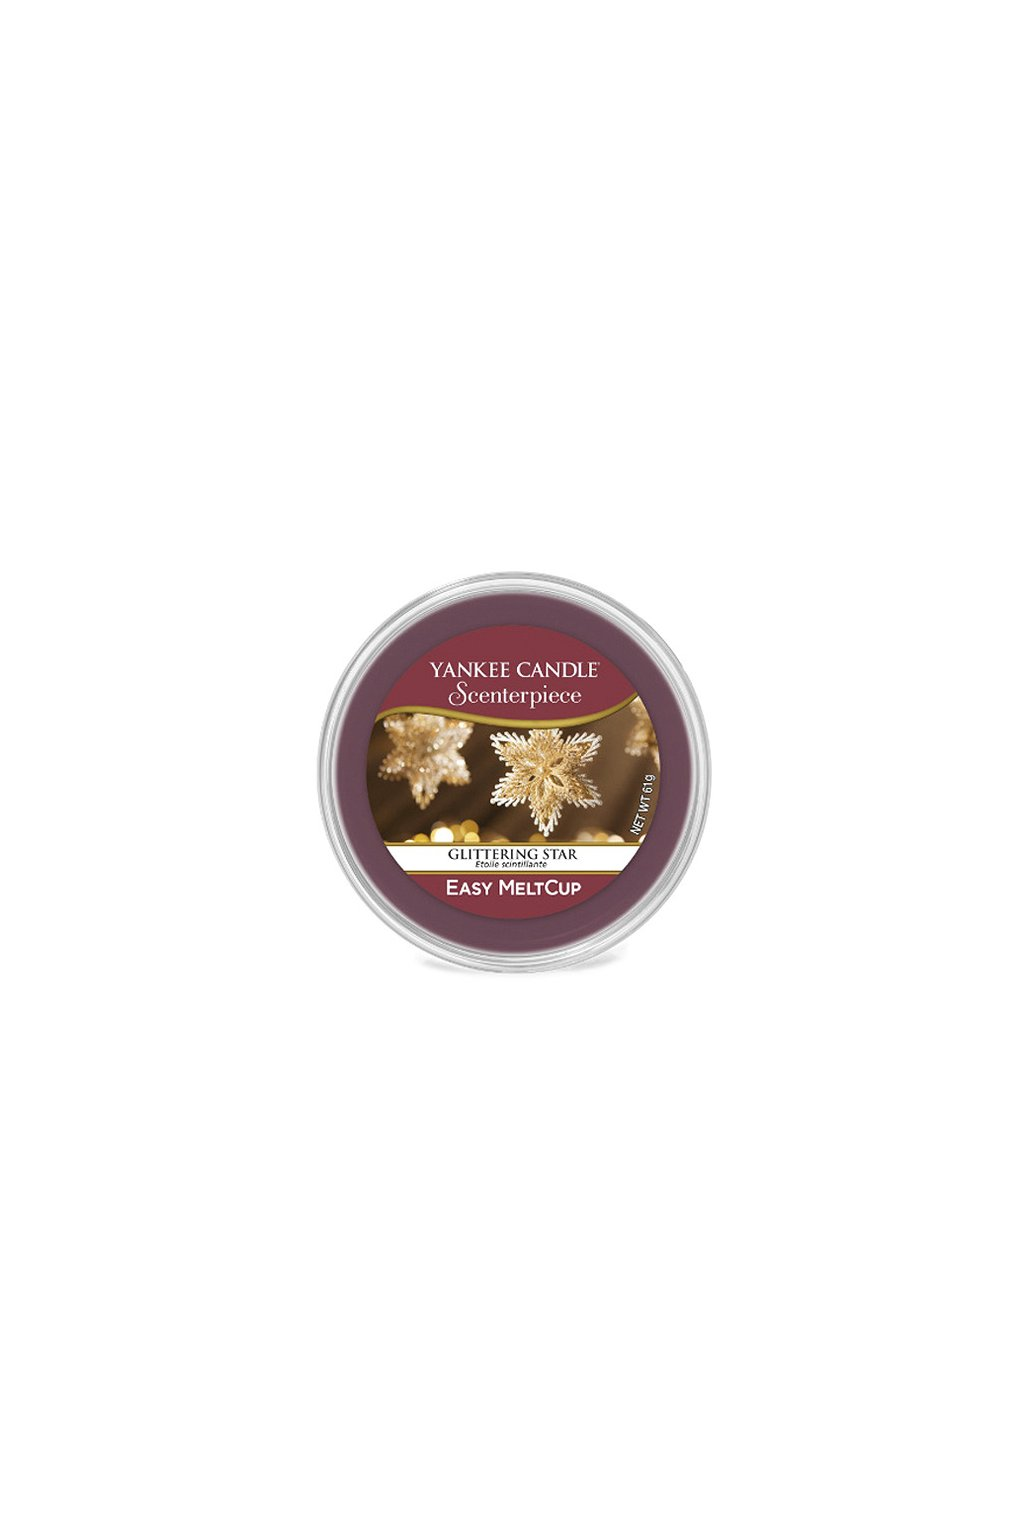 Yankee Canle Scenterpiece Meltcup Vosk Glittering Star